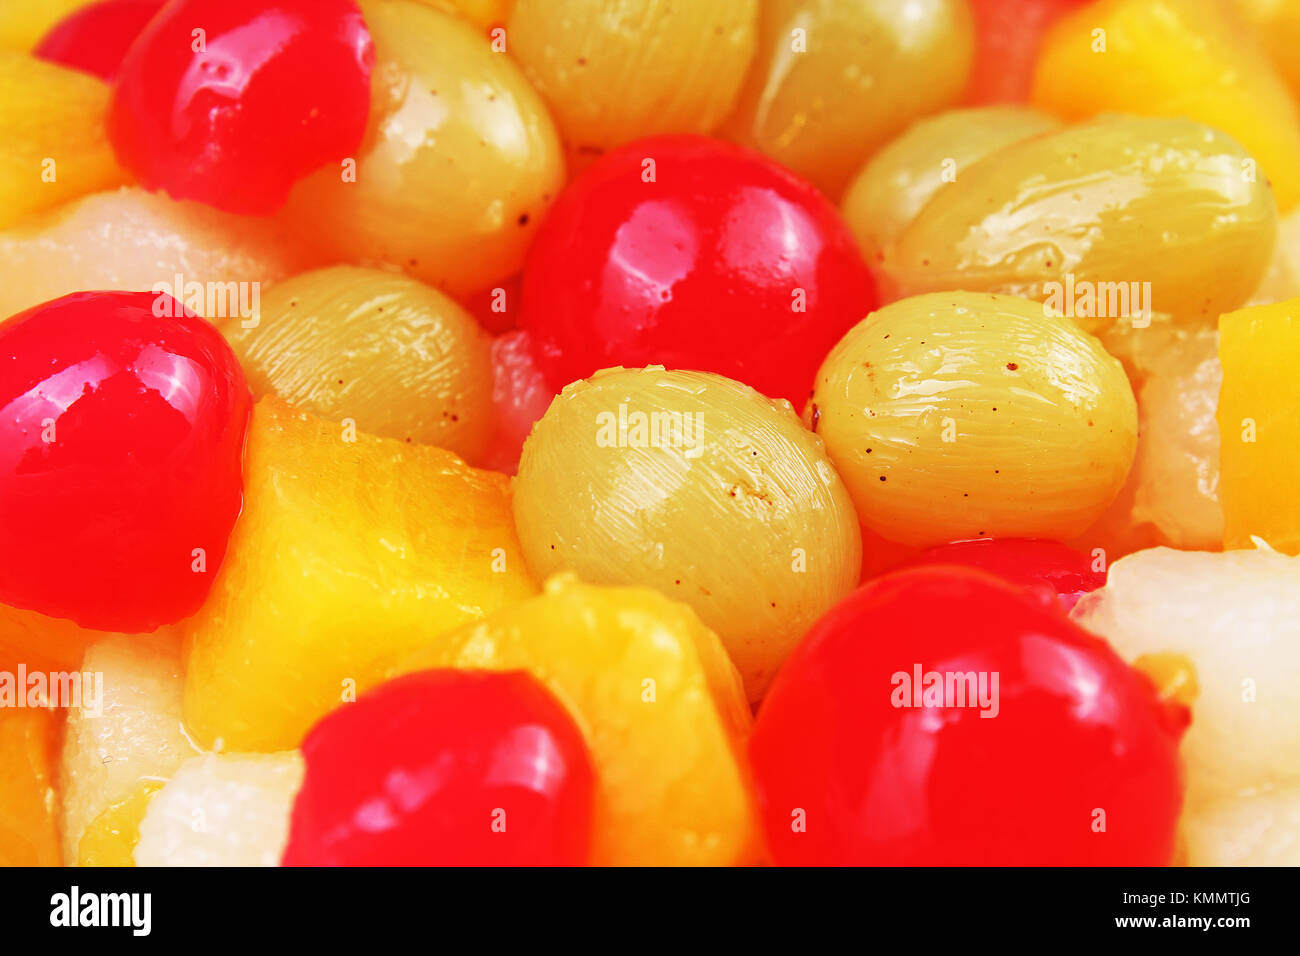 Fruit salad texture. Fruits as background pattern. Exotic Fruits Fruit salad with cocktail cherry sour cherry mango - Stock Image